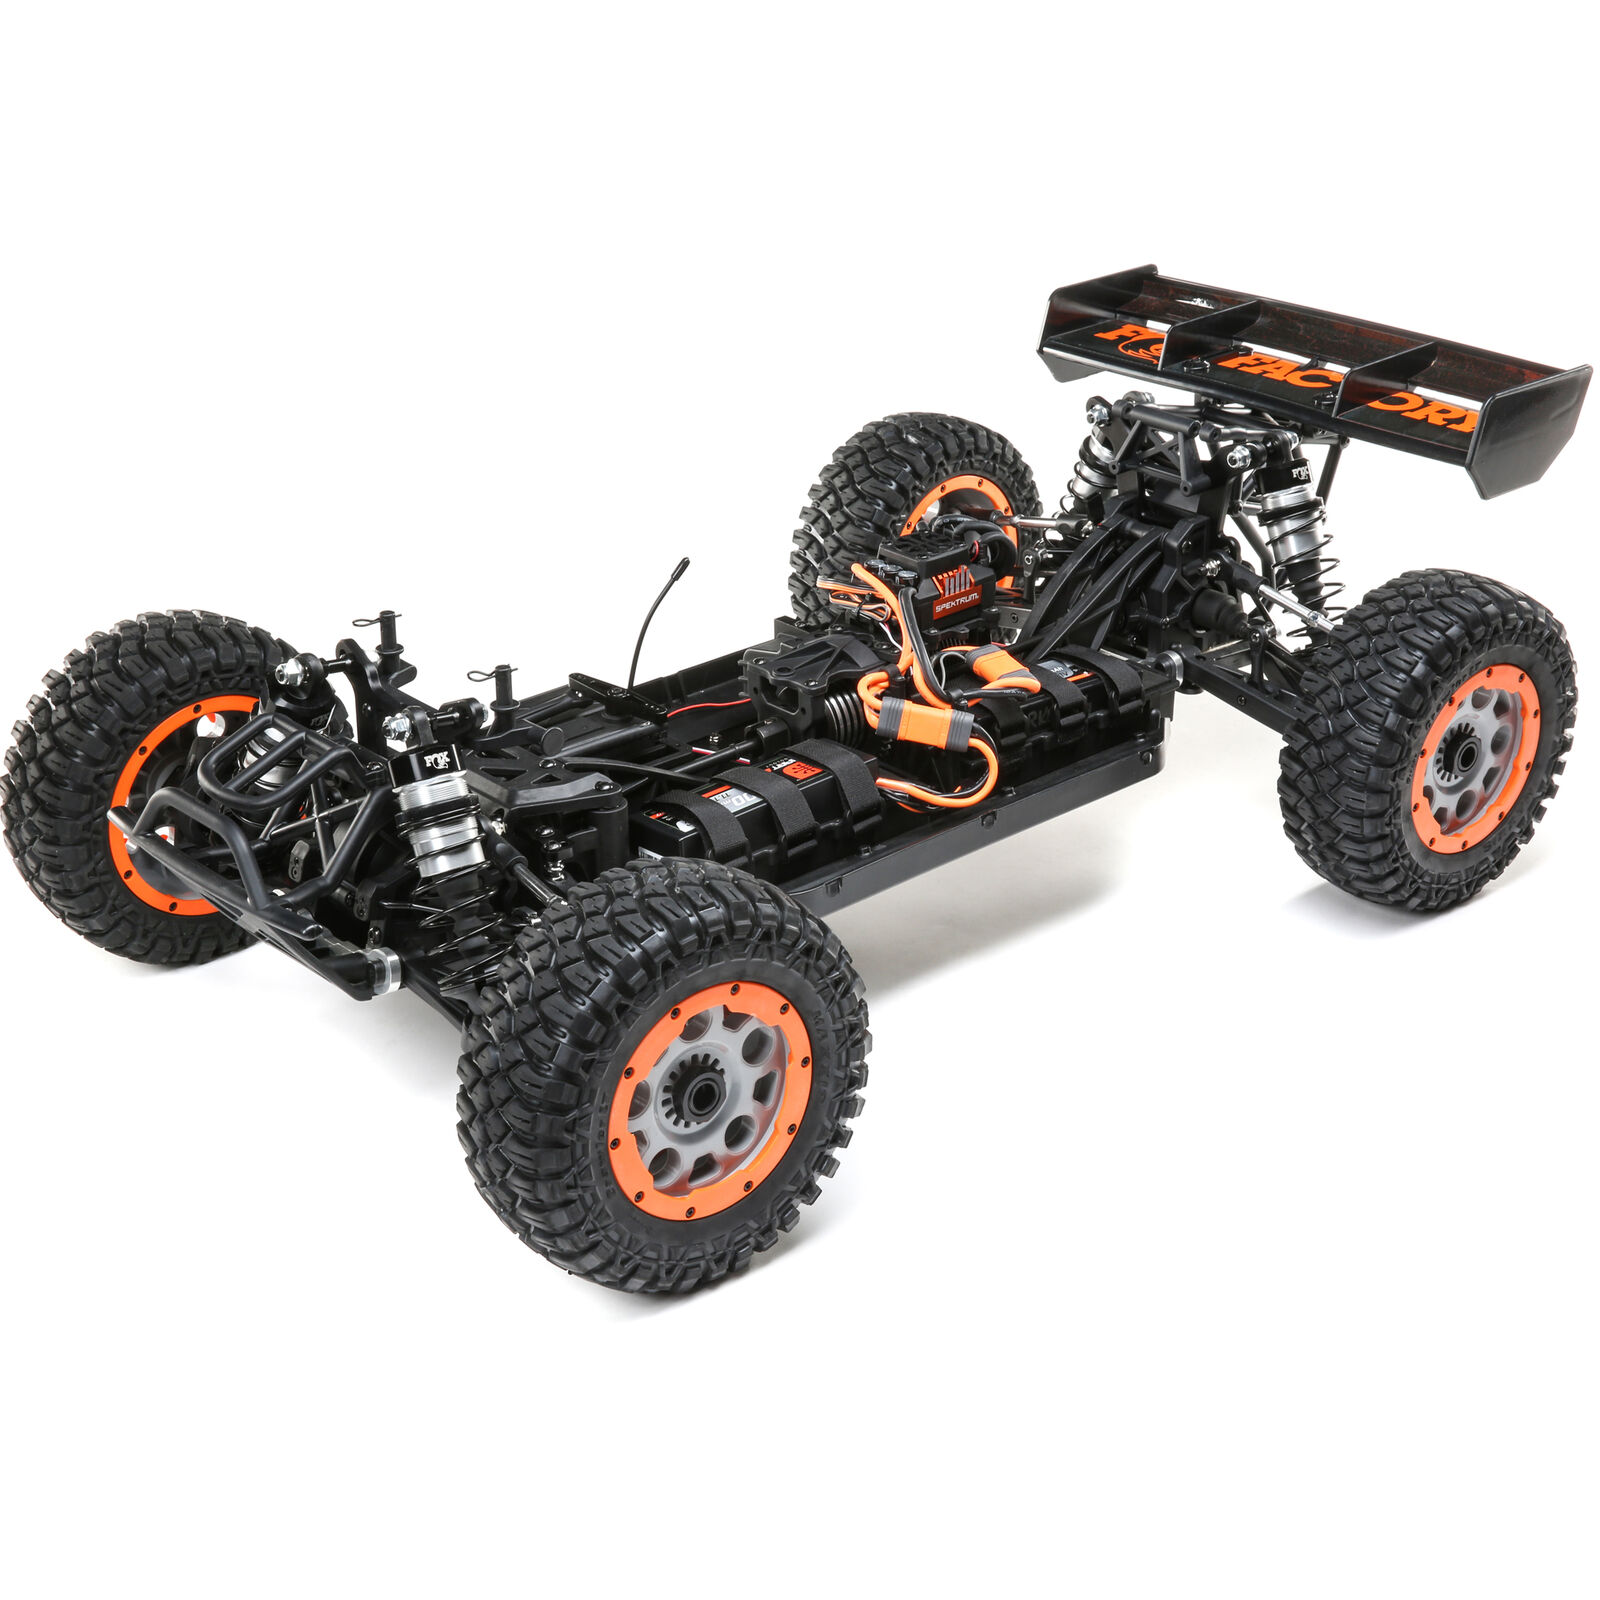 1/5 DBXL-E 2.0 4WD Desert Buggy Brushless RTR with Smart, Fox Body